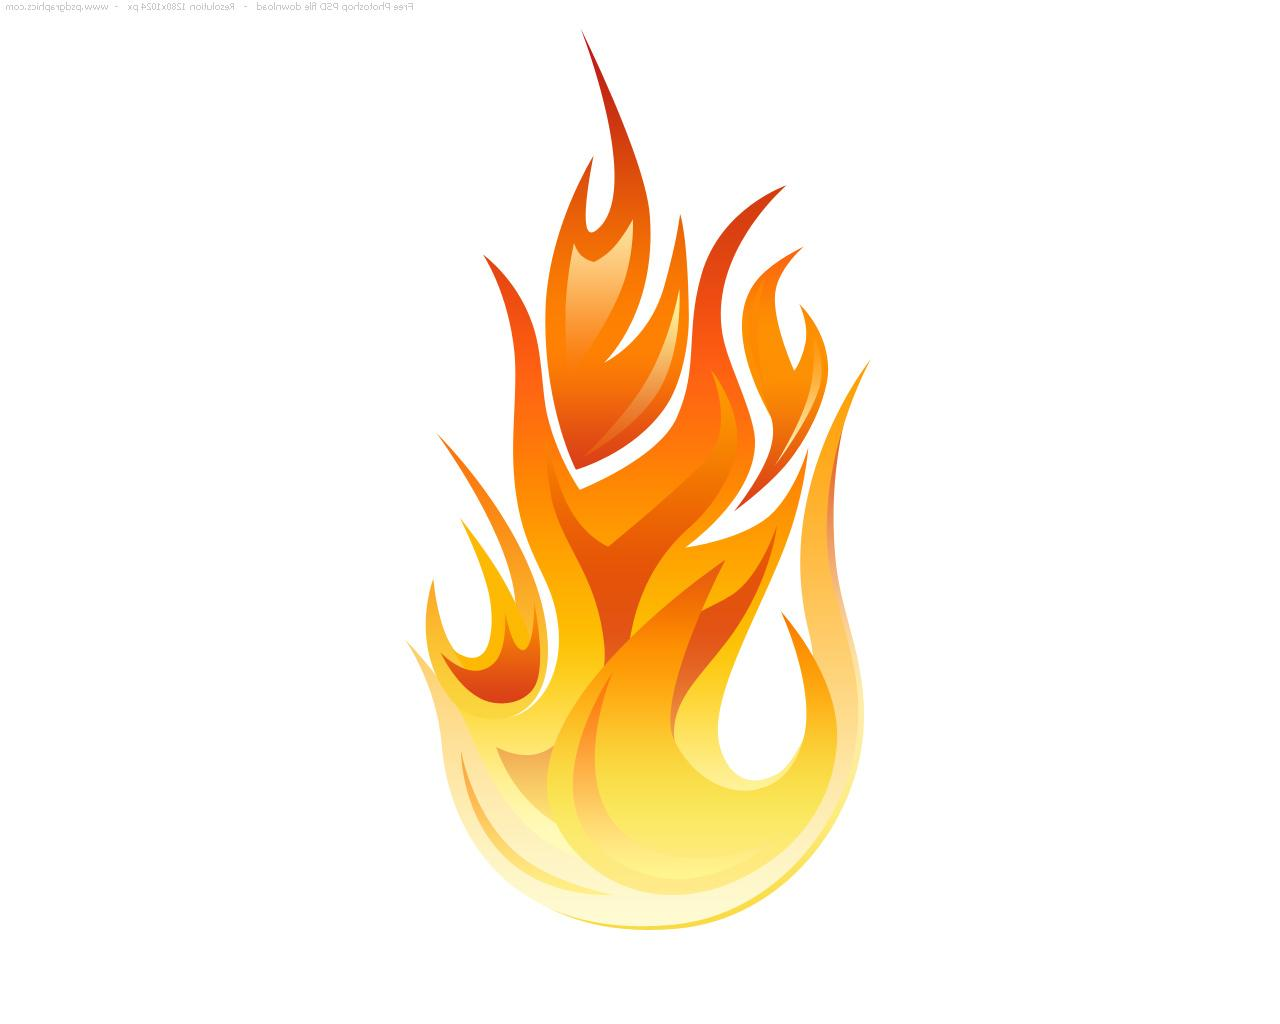 1280x1024 Best Hd Fire Flame Clip Art Free Vector For Download About Cdr